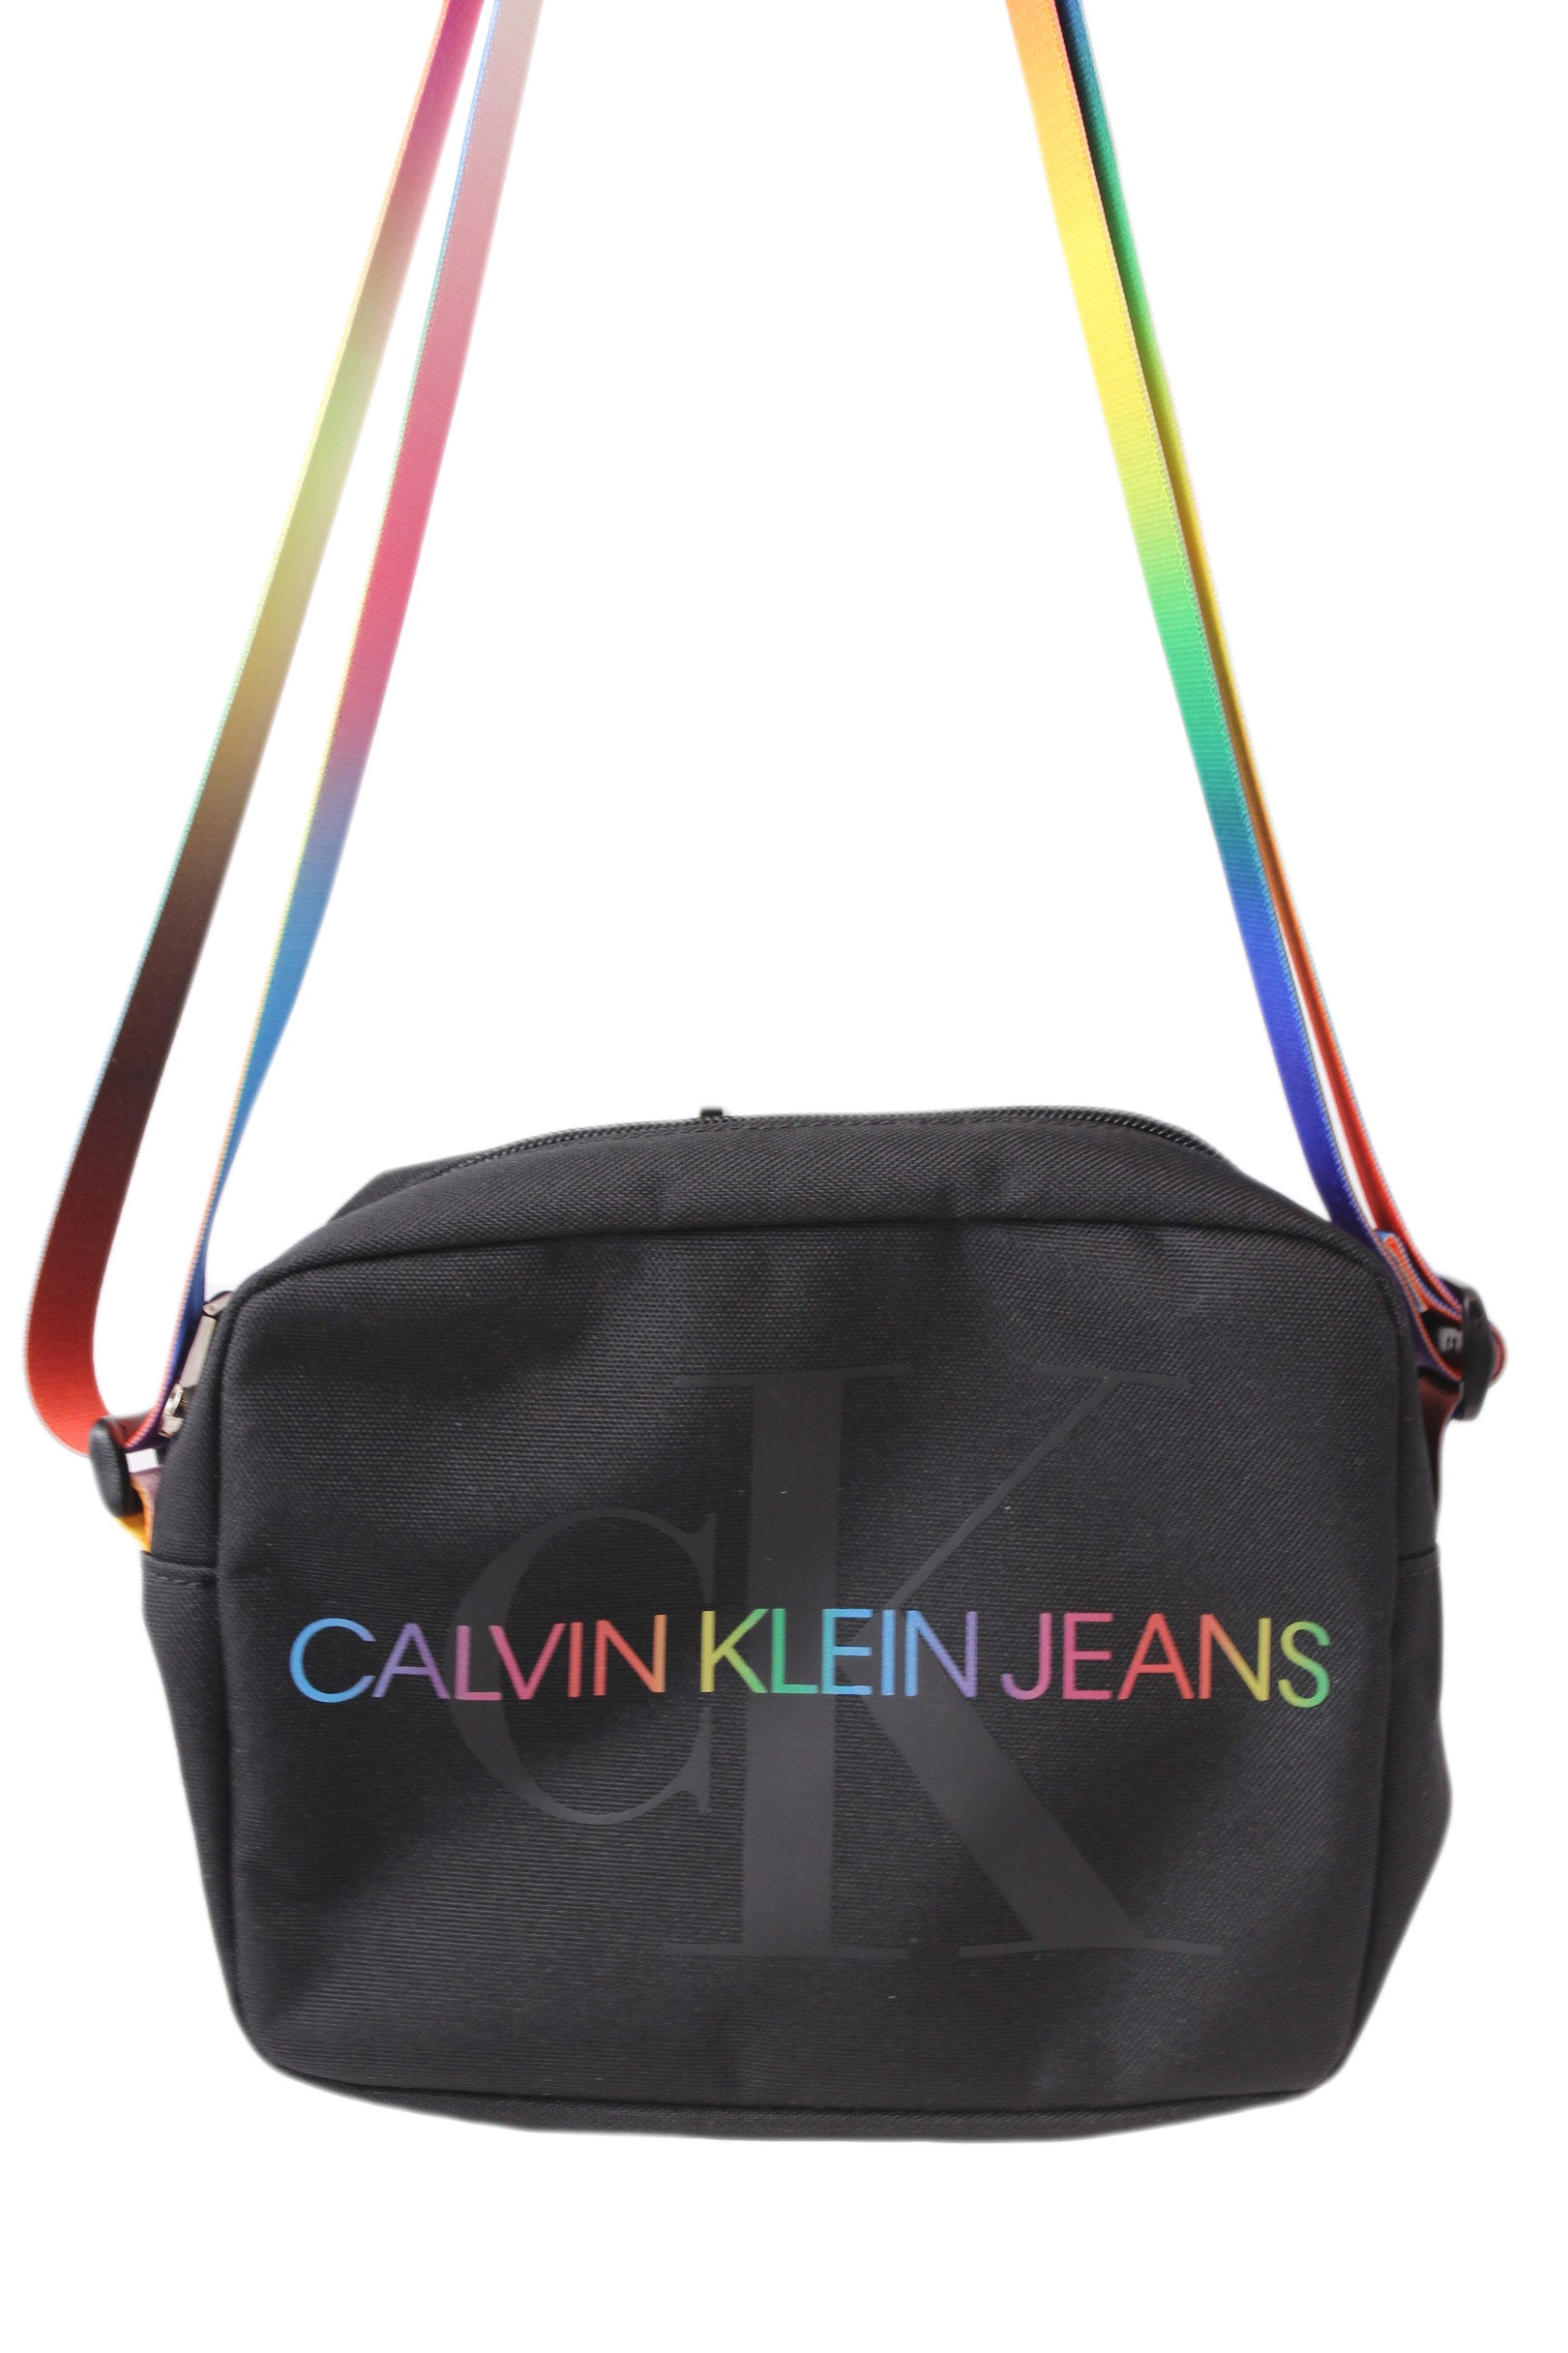 calvin klein jeans black and multicolored crossbody bag from their pride capsule collection. features signature rainbow logo on front and white logo on back, adjustable bag strap with a zip closure.